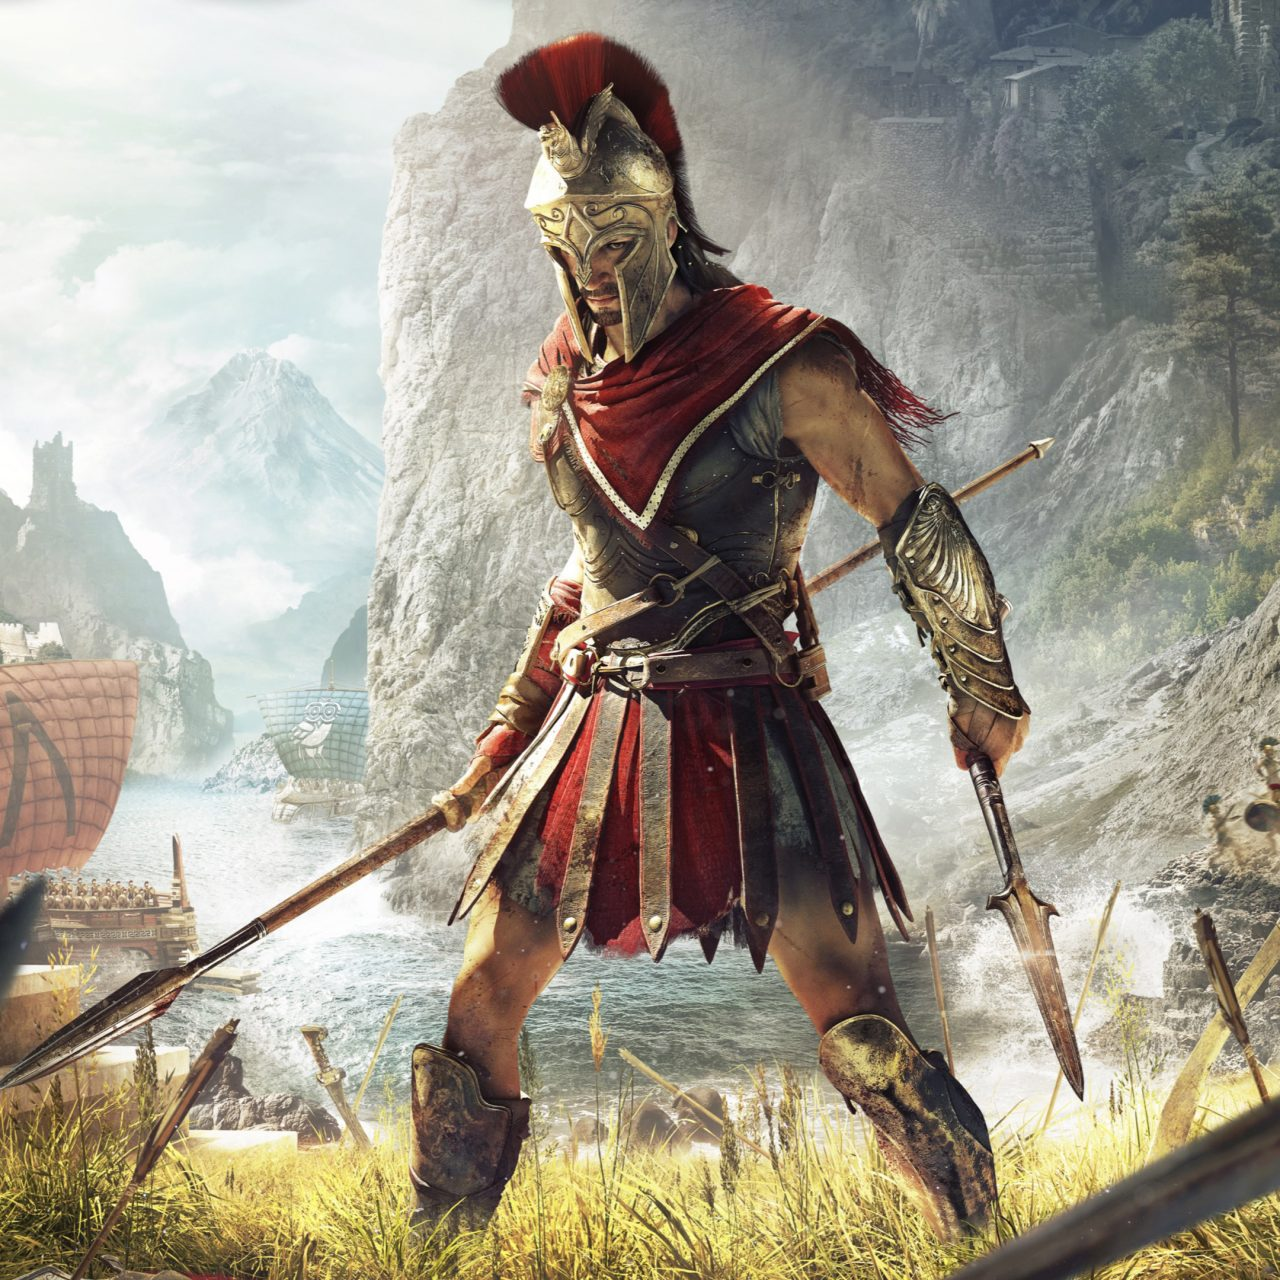 Assassin's Creed Odyssey Game 4K Wallpaper